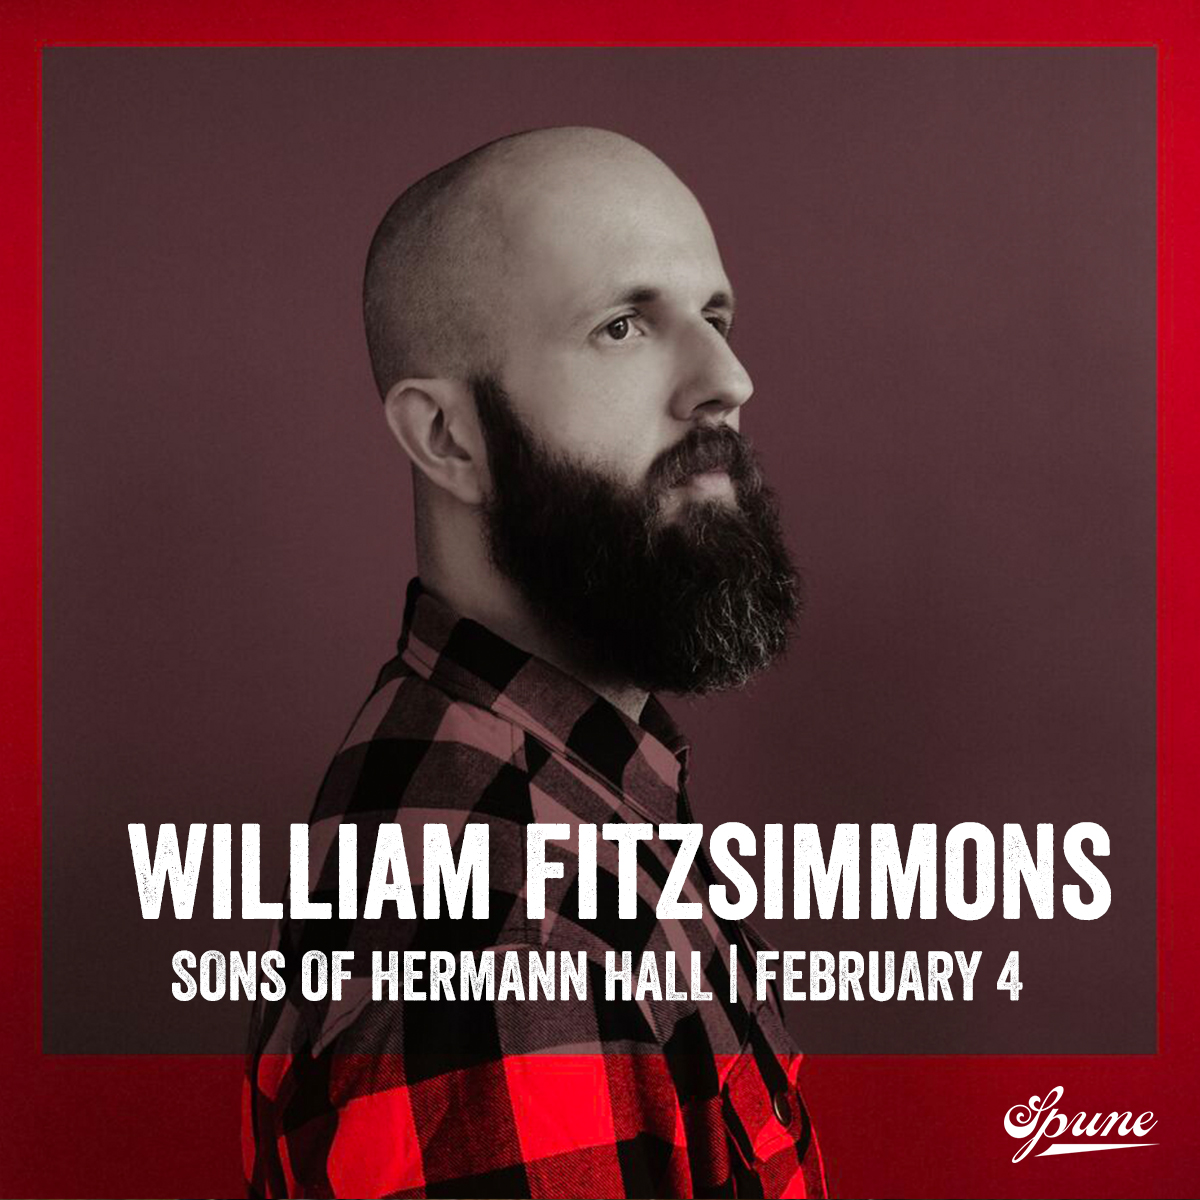 FEB04_William Fitzsimmons_1200x1200.jpg